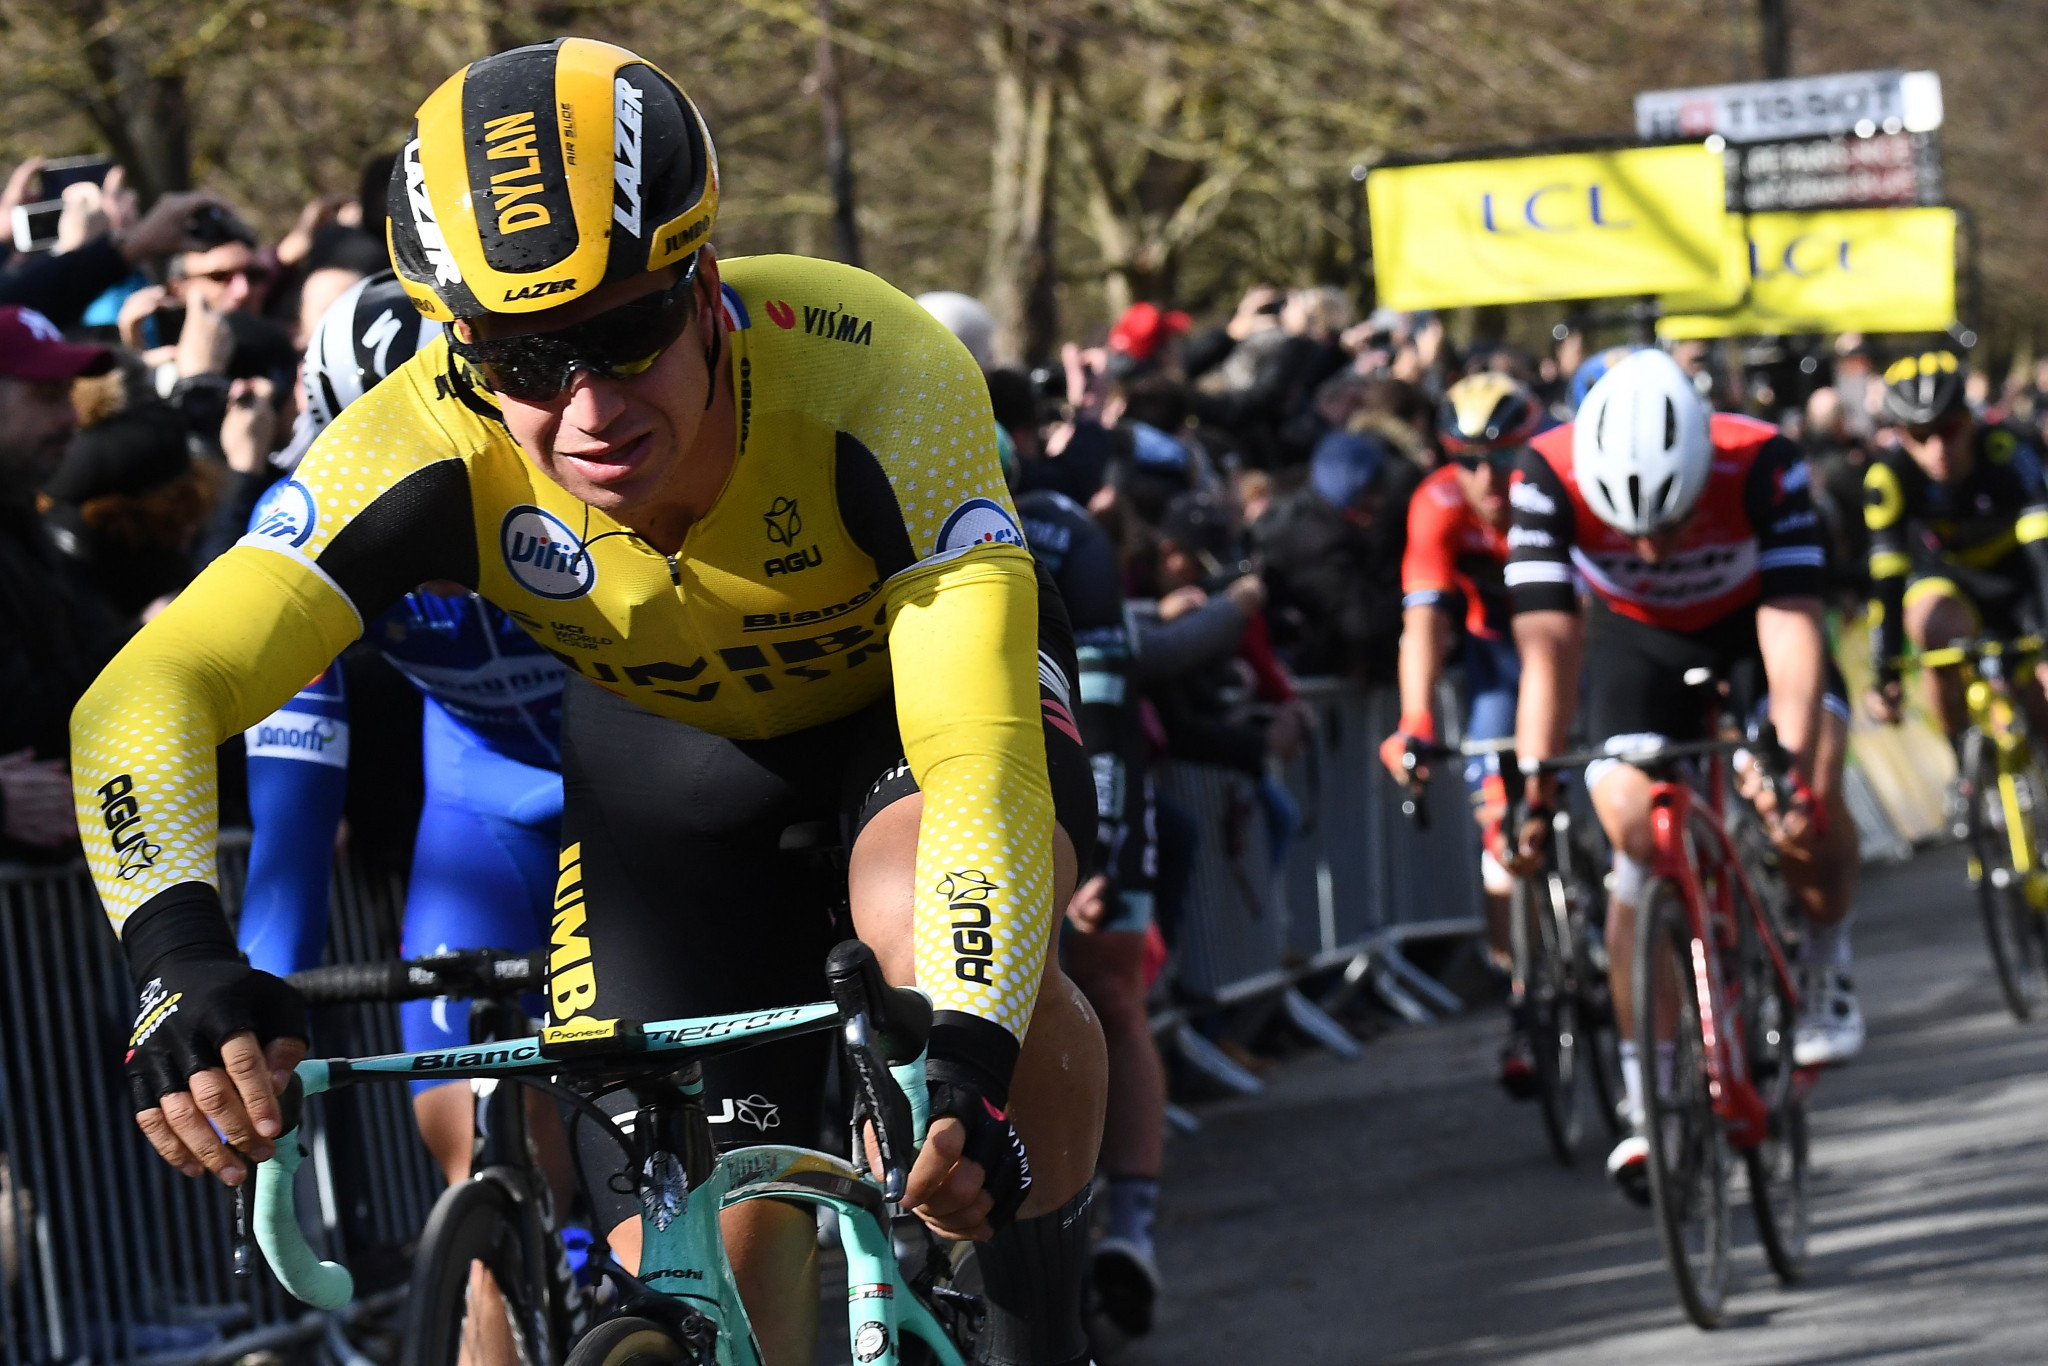 Dylan Groenewegen won the opening stage of the Paris-Nice 2019 race today ©Getty Images